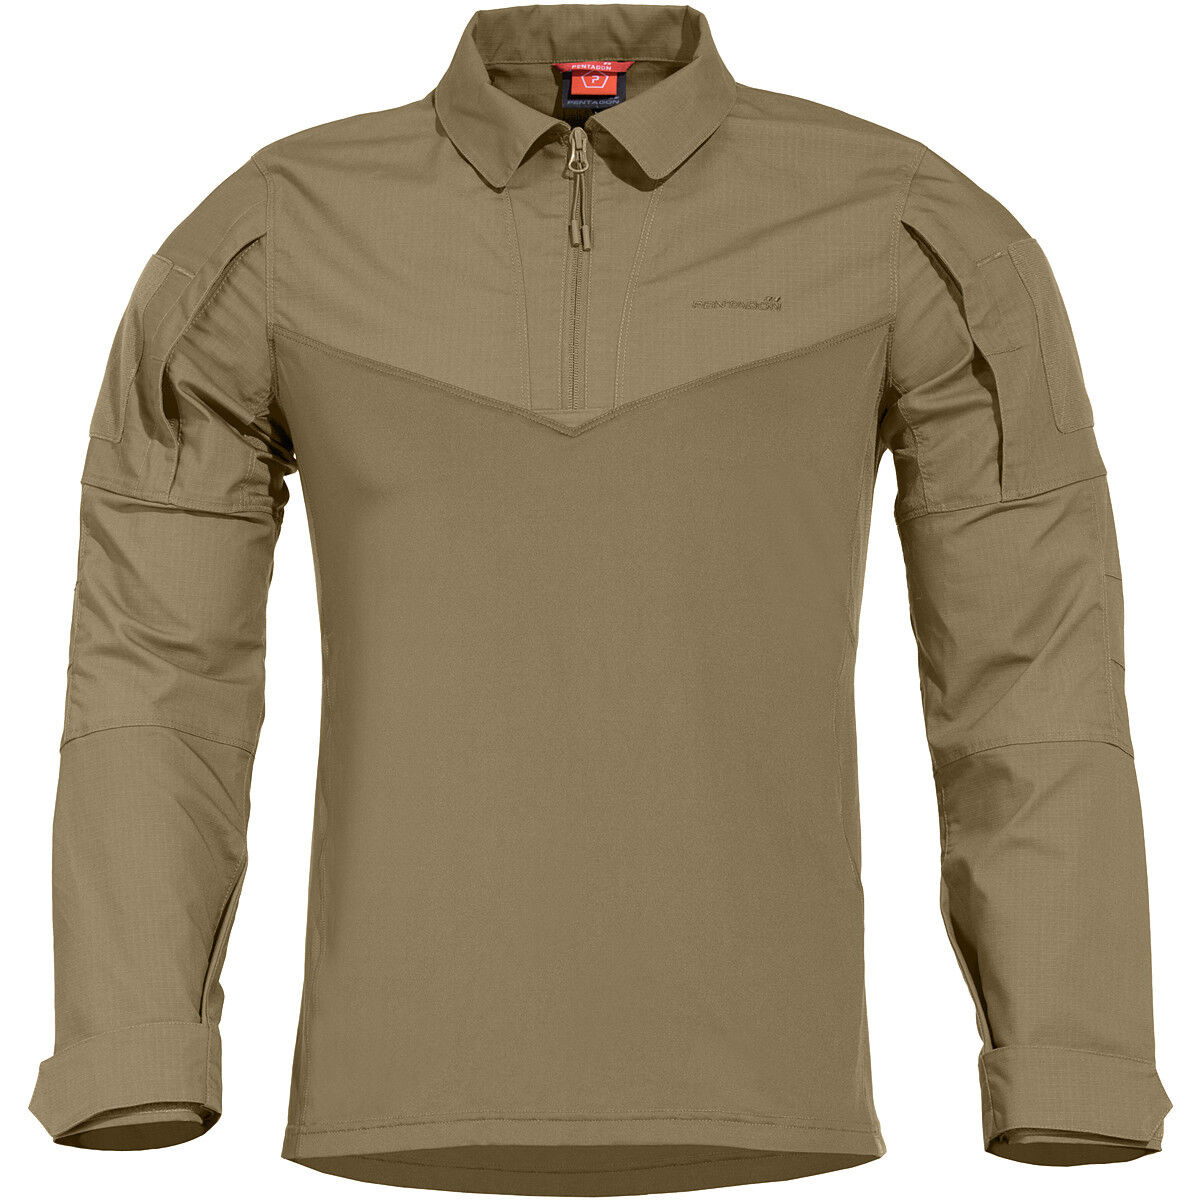 Pentagon Ranger Tac-Fresh Shirt Long Sleeve Hiking Ranger Outdoor Casual Coyote